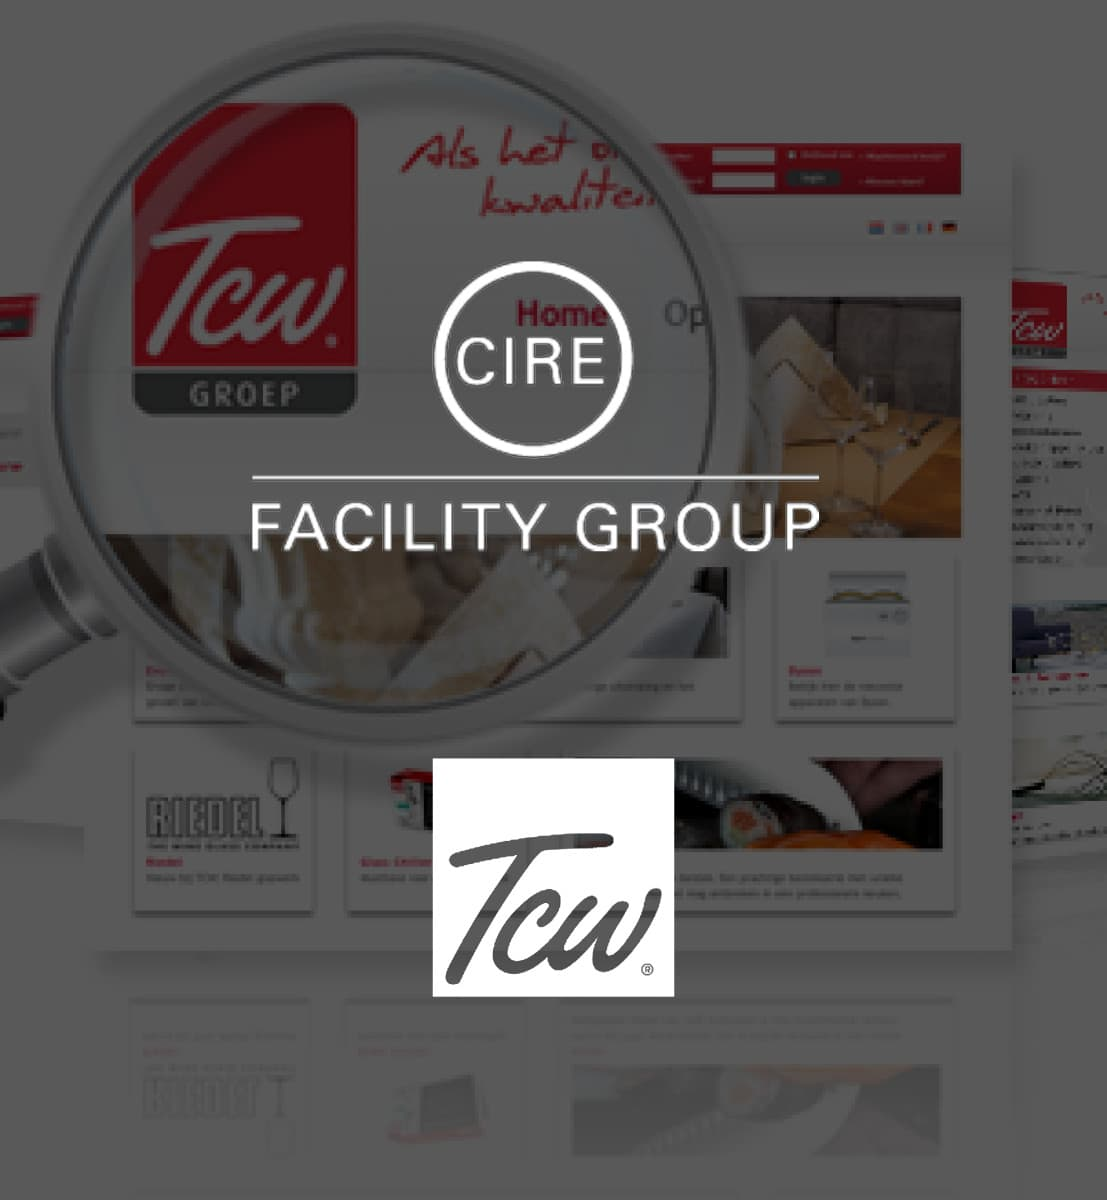 DEX international M&A advised Cire Facility Group on the acquisition of TCW Groep.